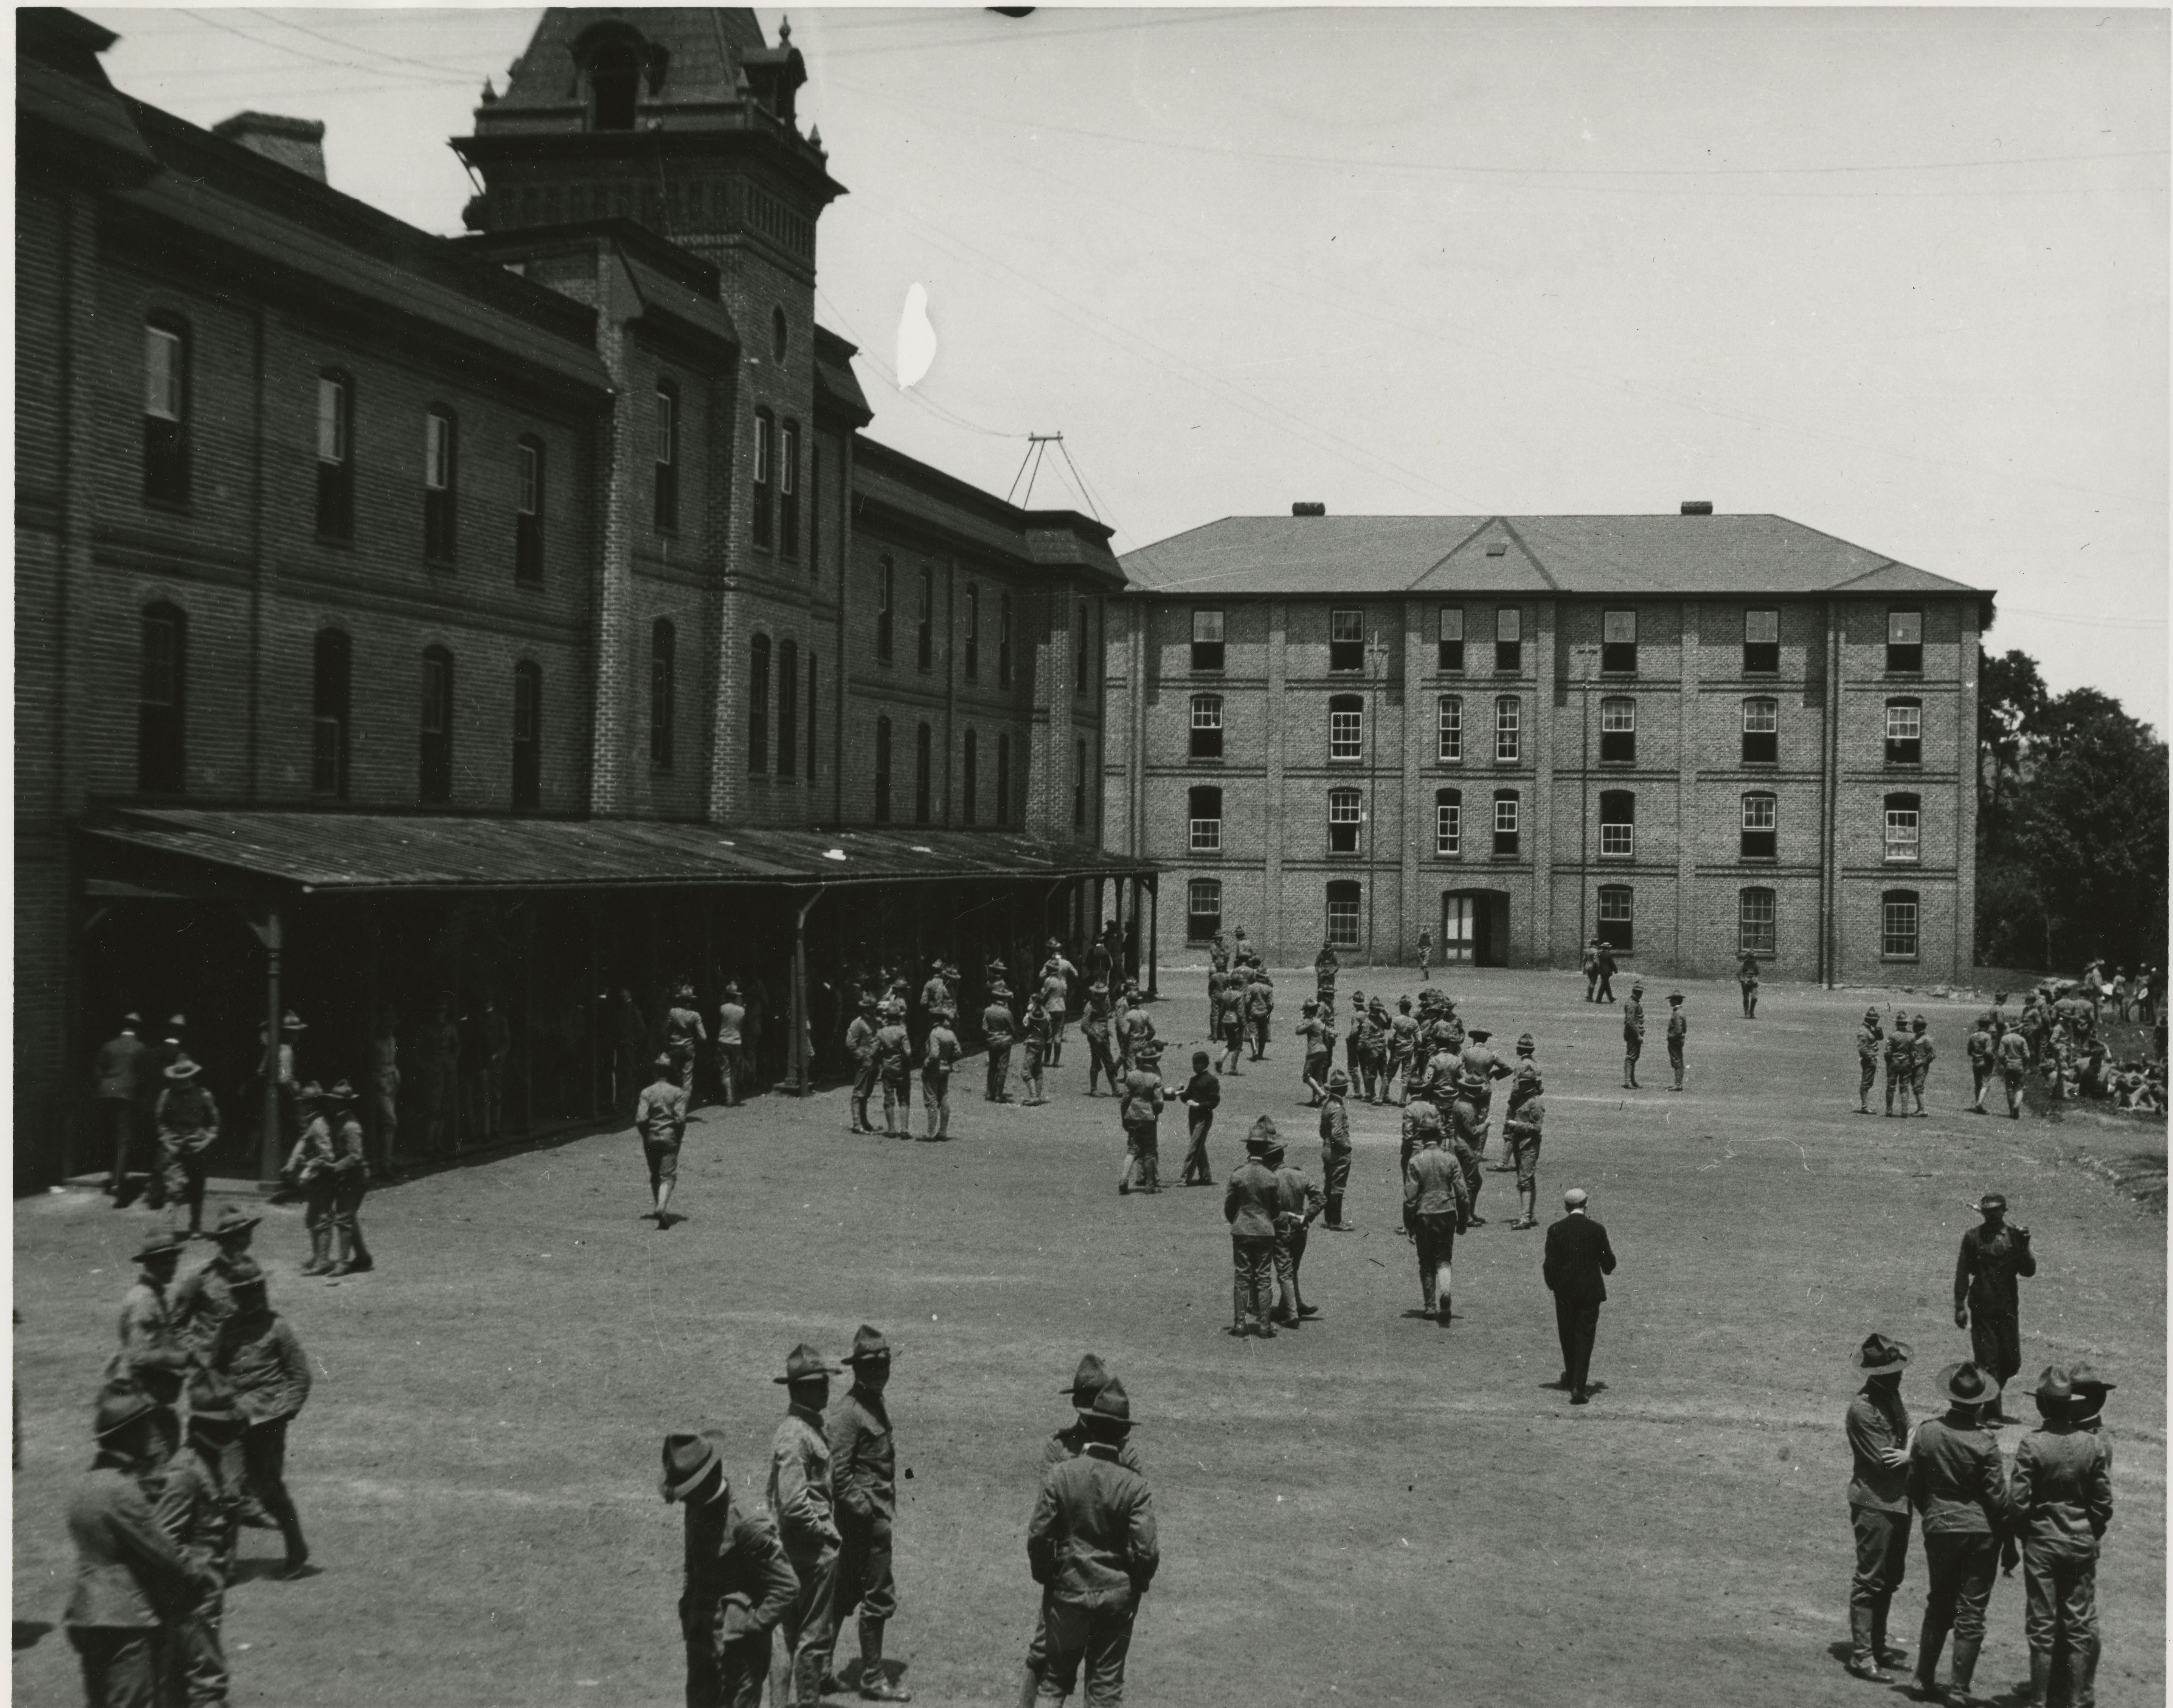 Upper Quad, before 1950. Barracks No. 1 (now Lane Hall) on the left. Rasche Hall (old Barracks No. 2 plus additions) at the center.